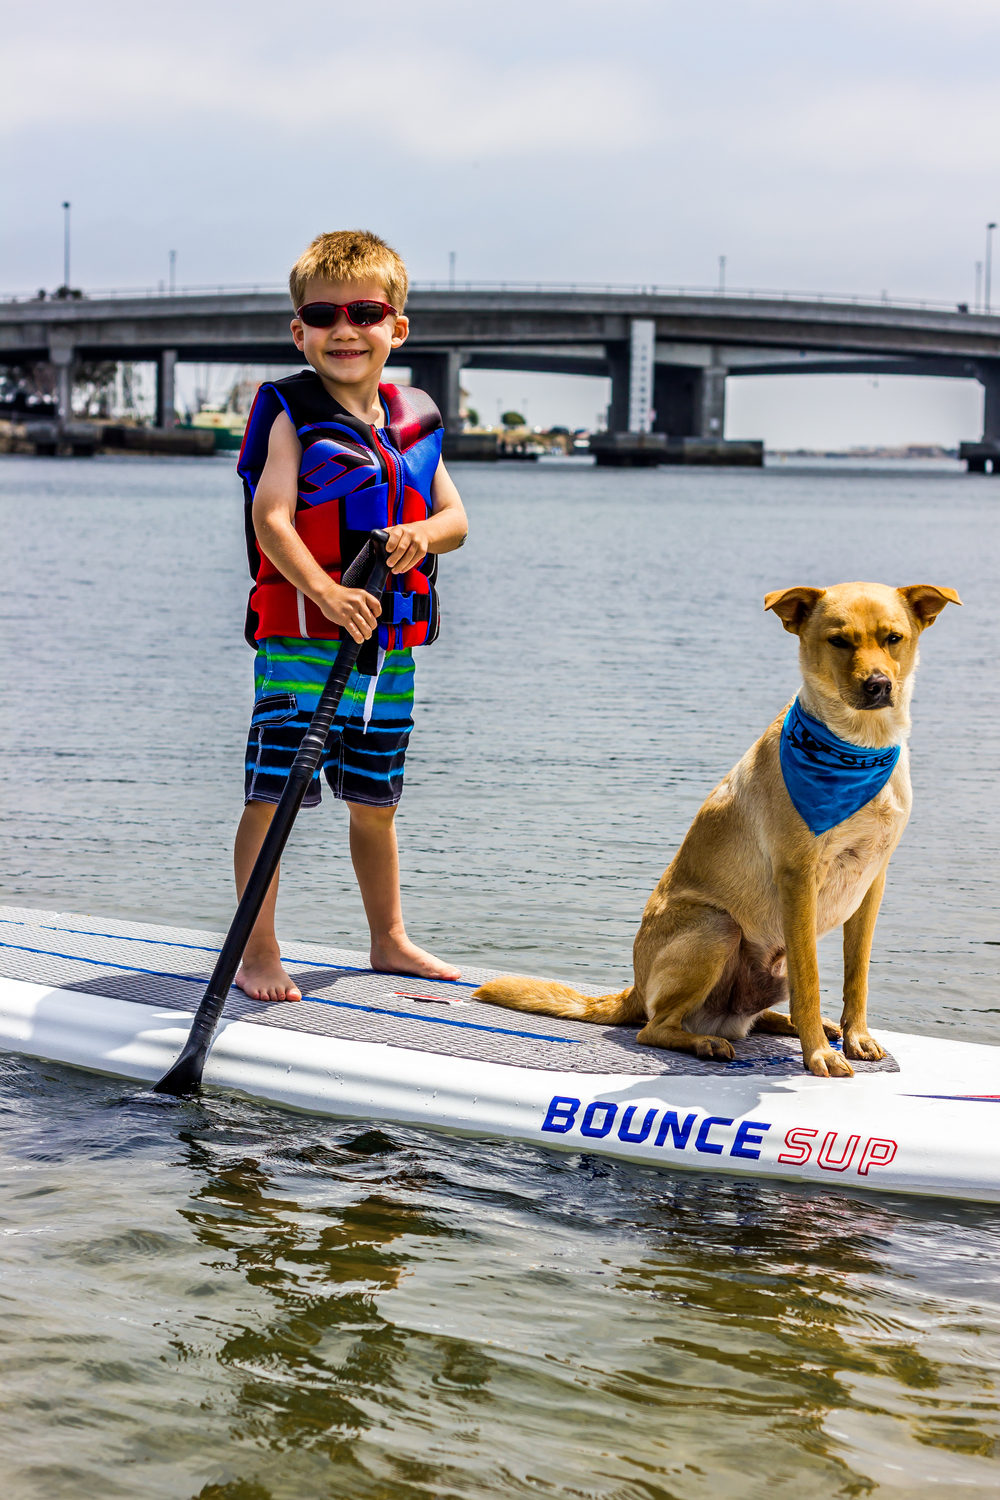 Even kids and dogs enjoy the new Bounce SUP's